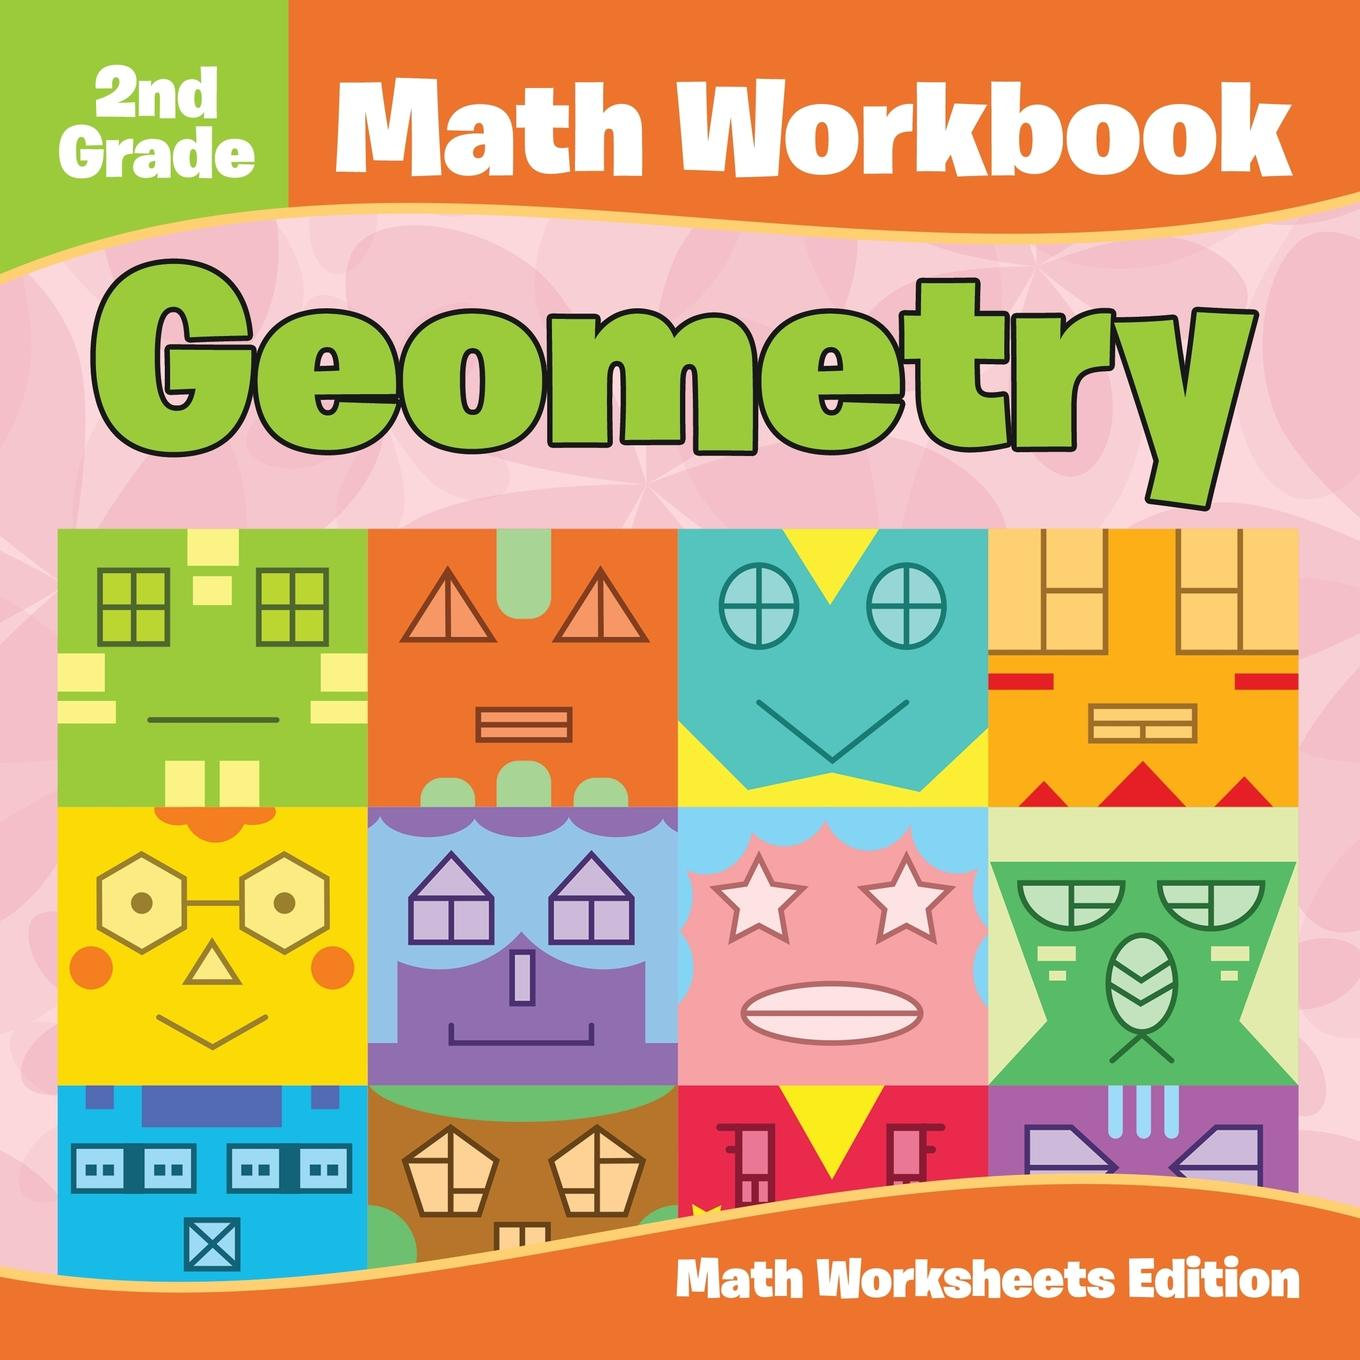 2nd Grade Math Workbook Geometry Math Worksheets Edition